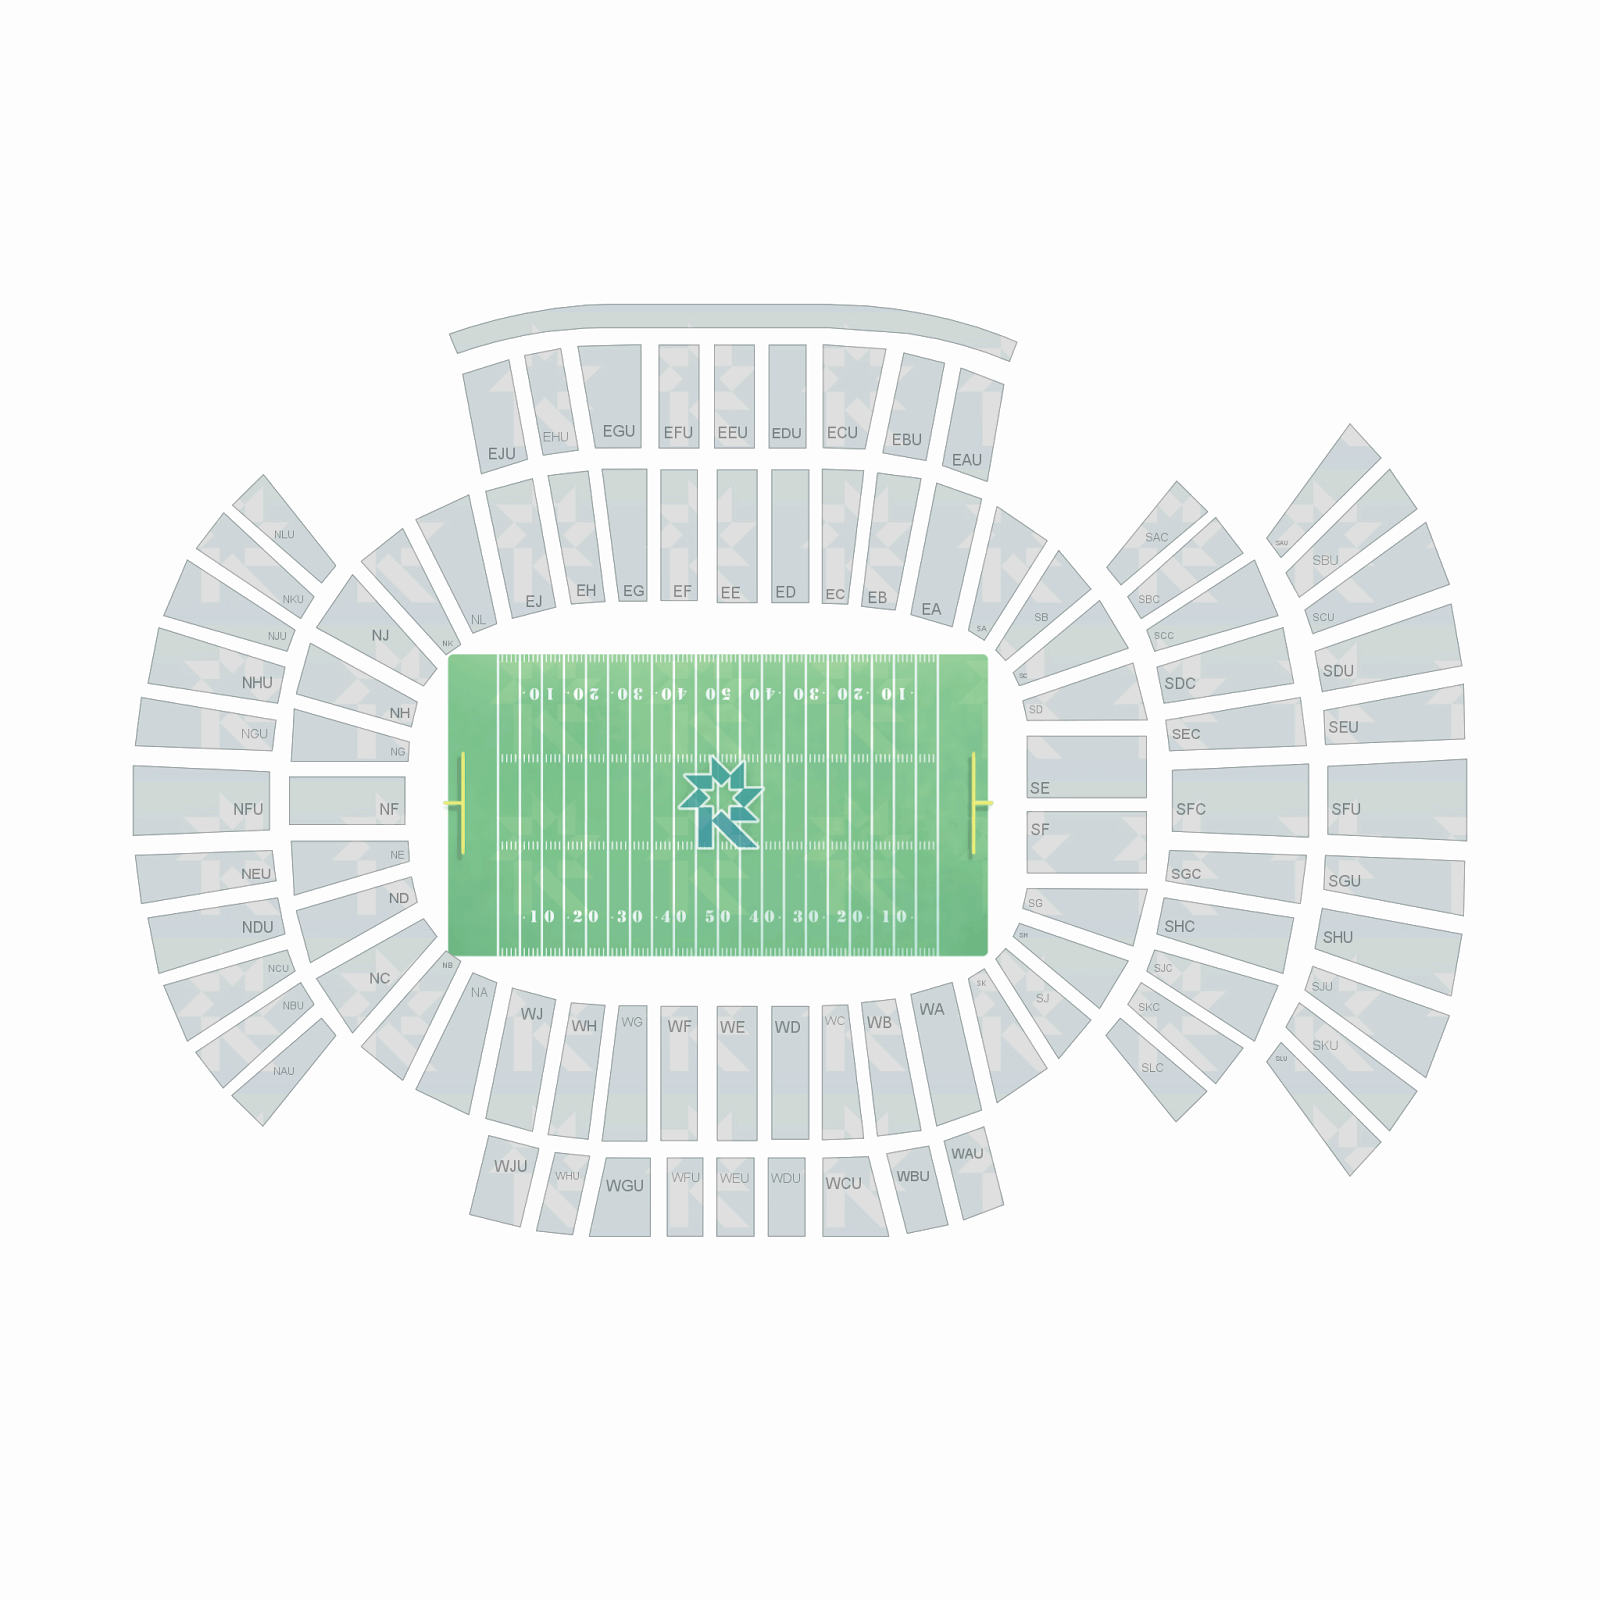 beaver stadium seating chart - Beaver Stadium Seating Chart & Interactive Seat Map SeatGeek